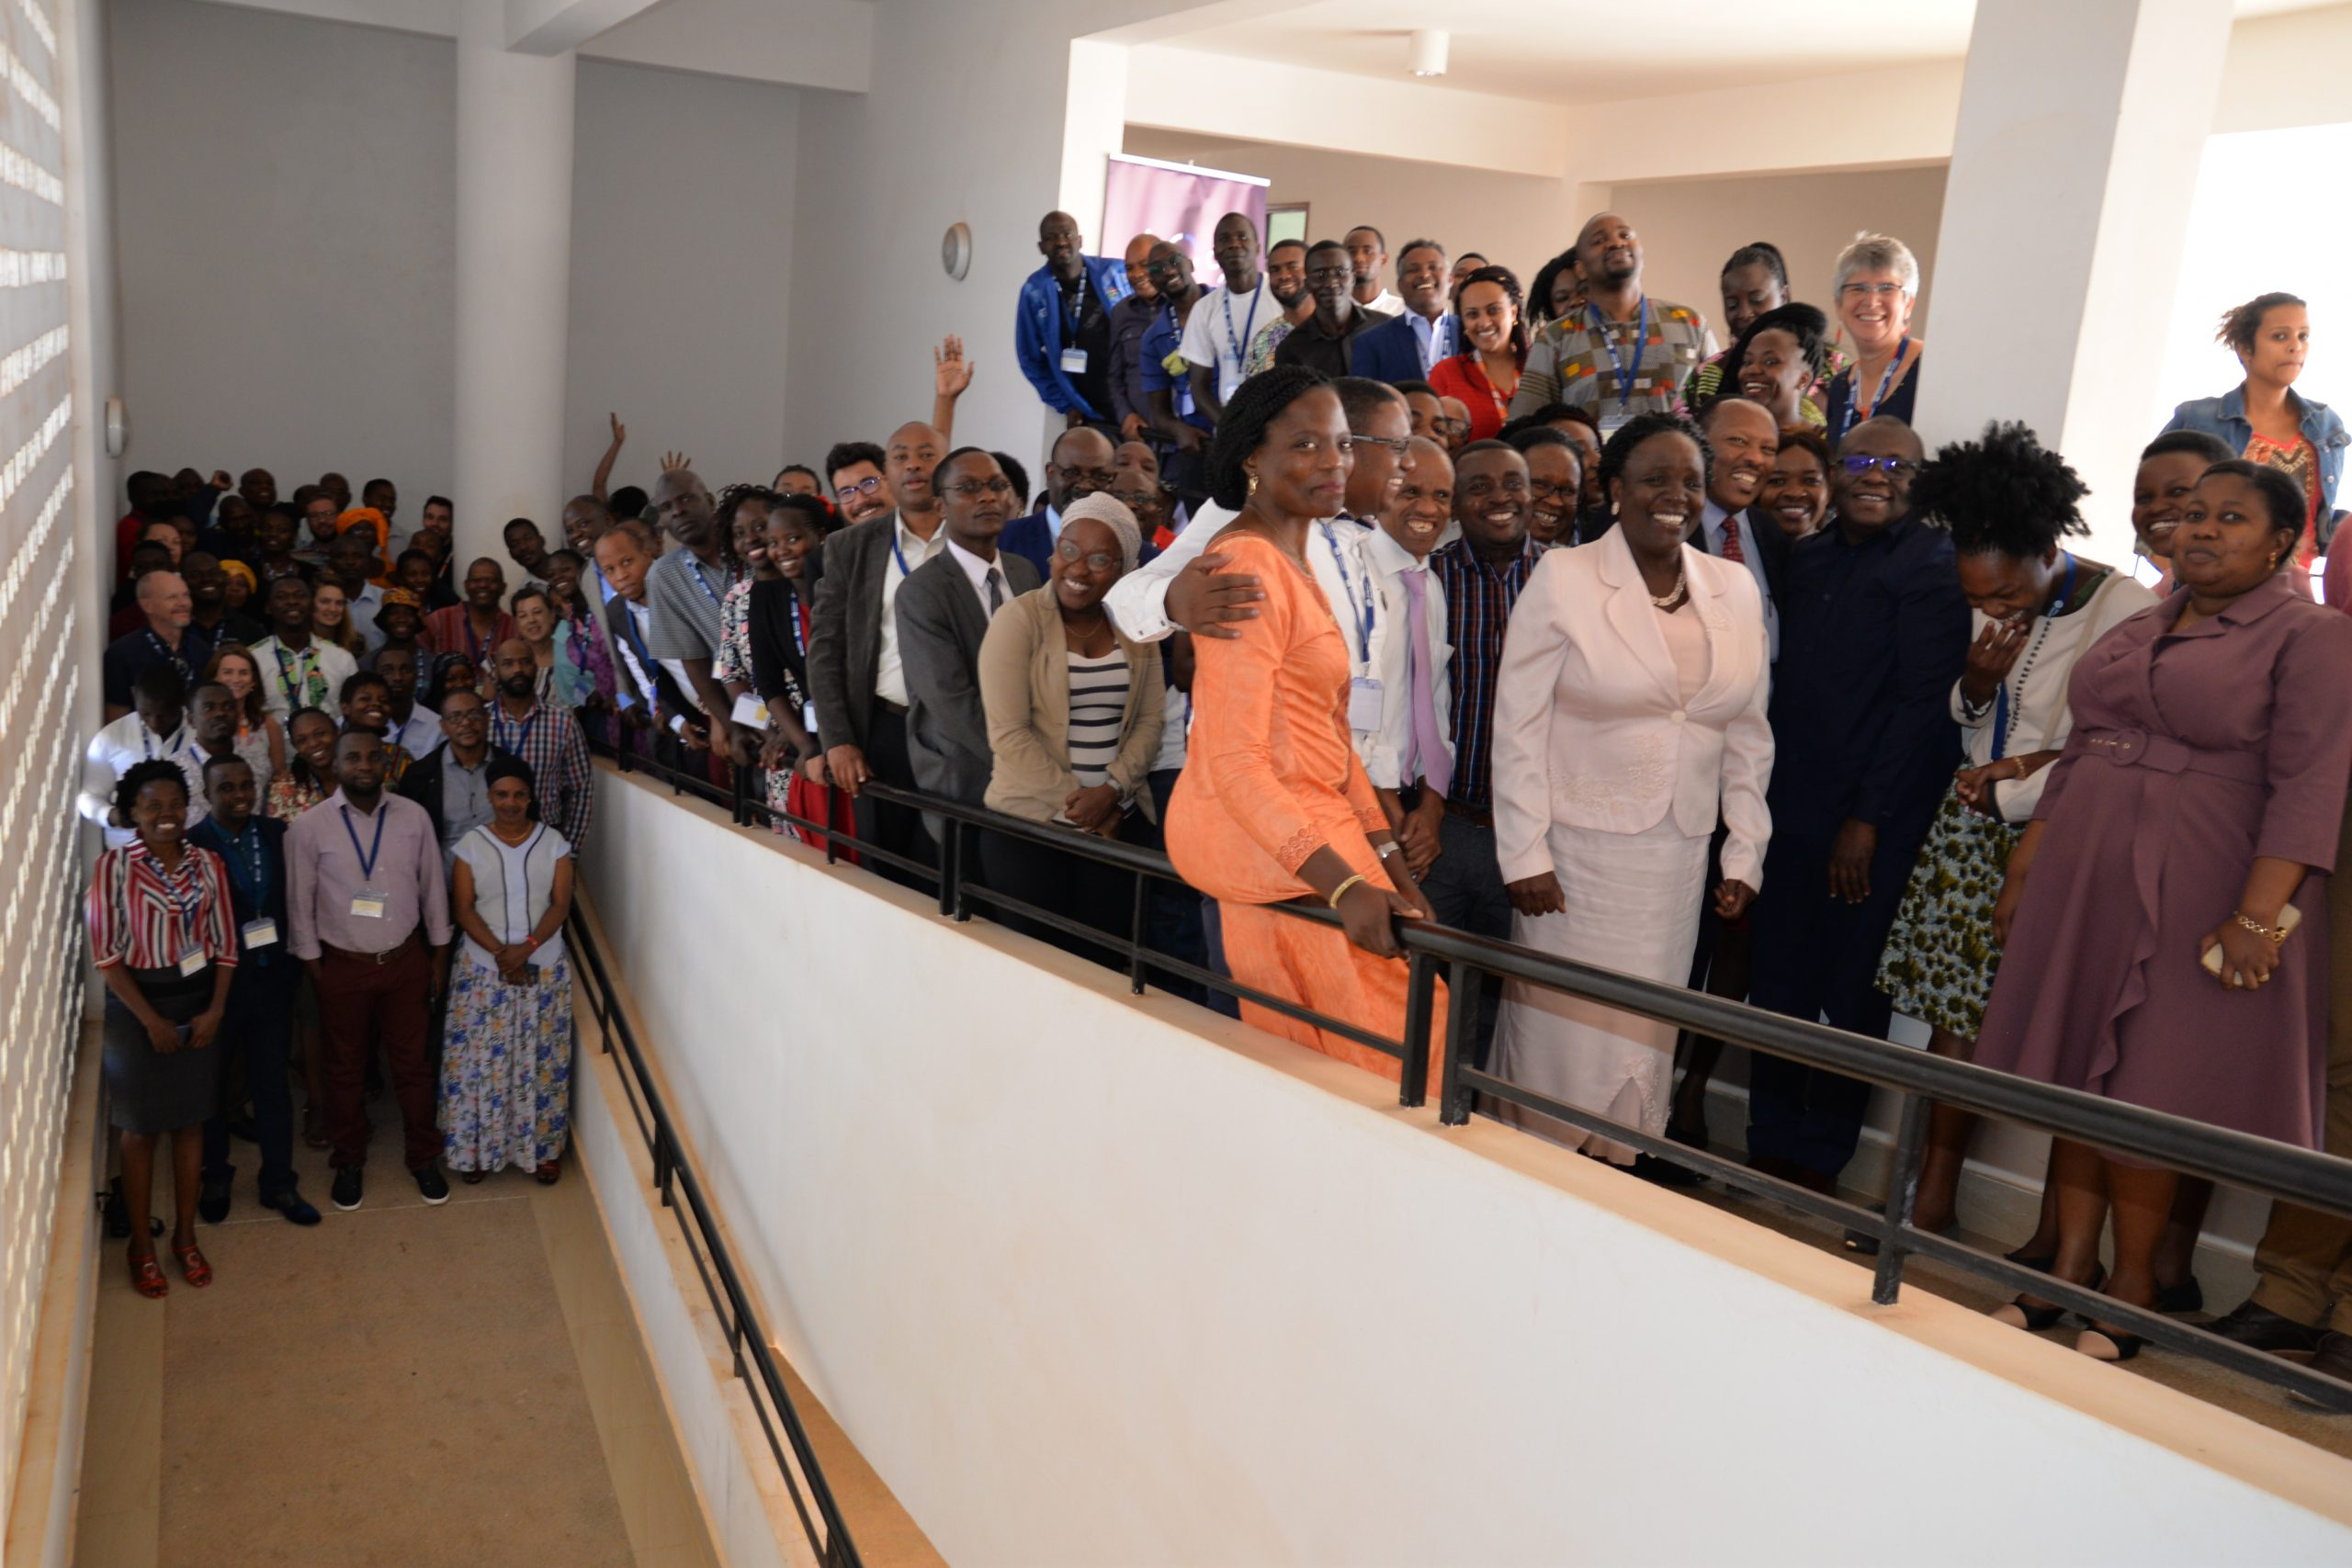 Fourth Summit on Community Networks in Africa held at the University of Dodoma.